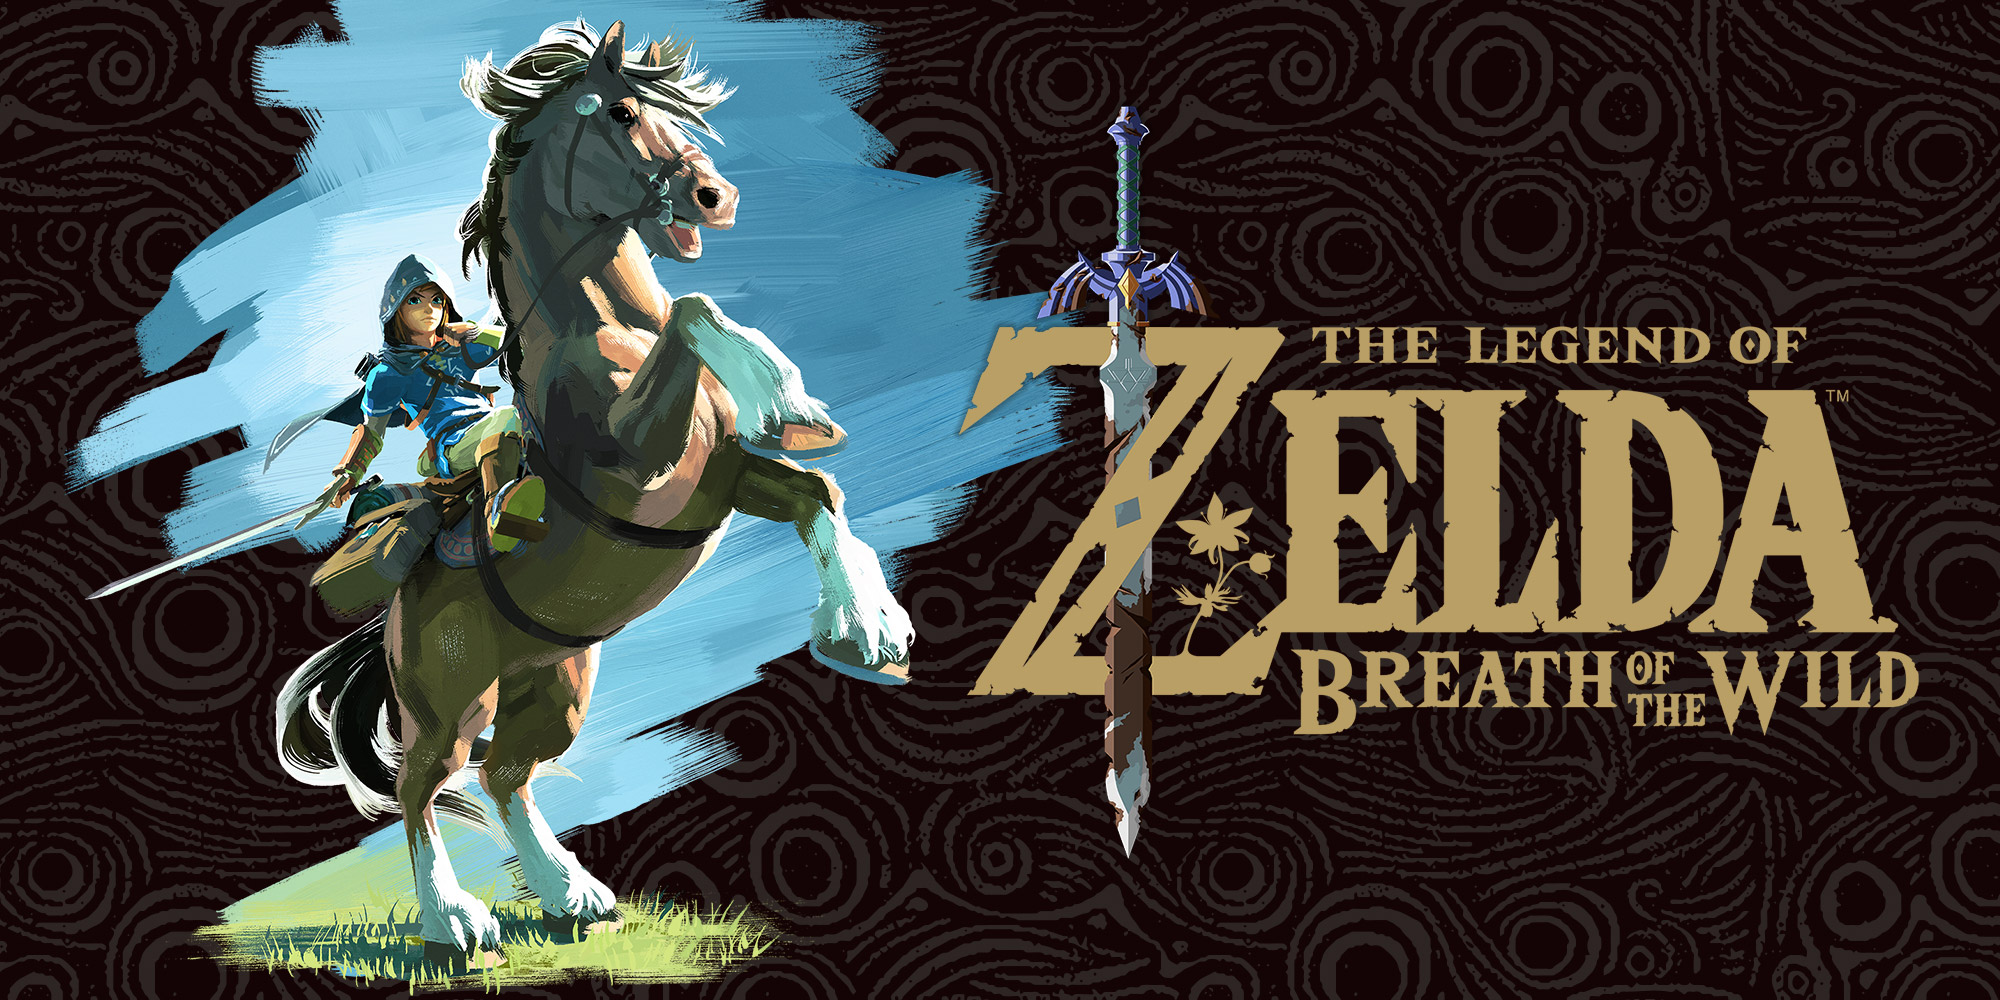 See what the new The Legend of Zelda amiibo can do in The Legend of Zelda: Breath of the Wild!